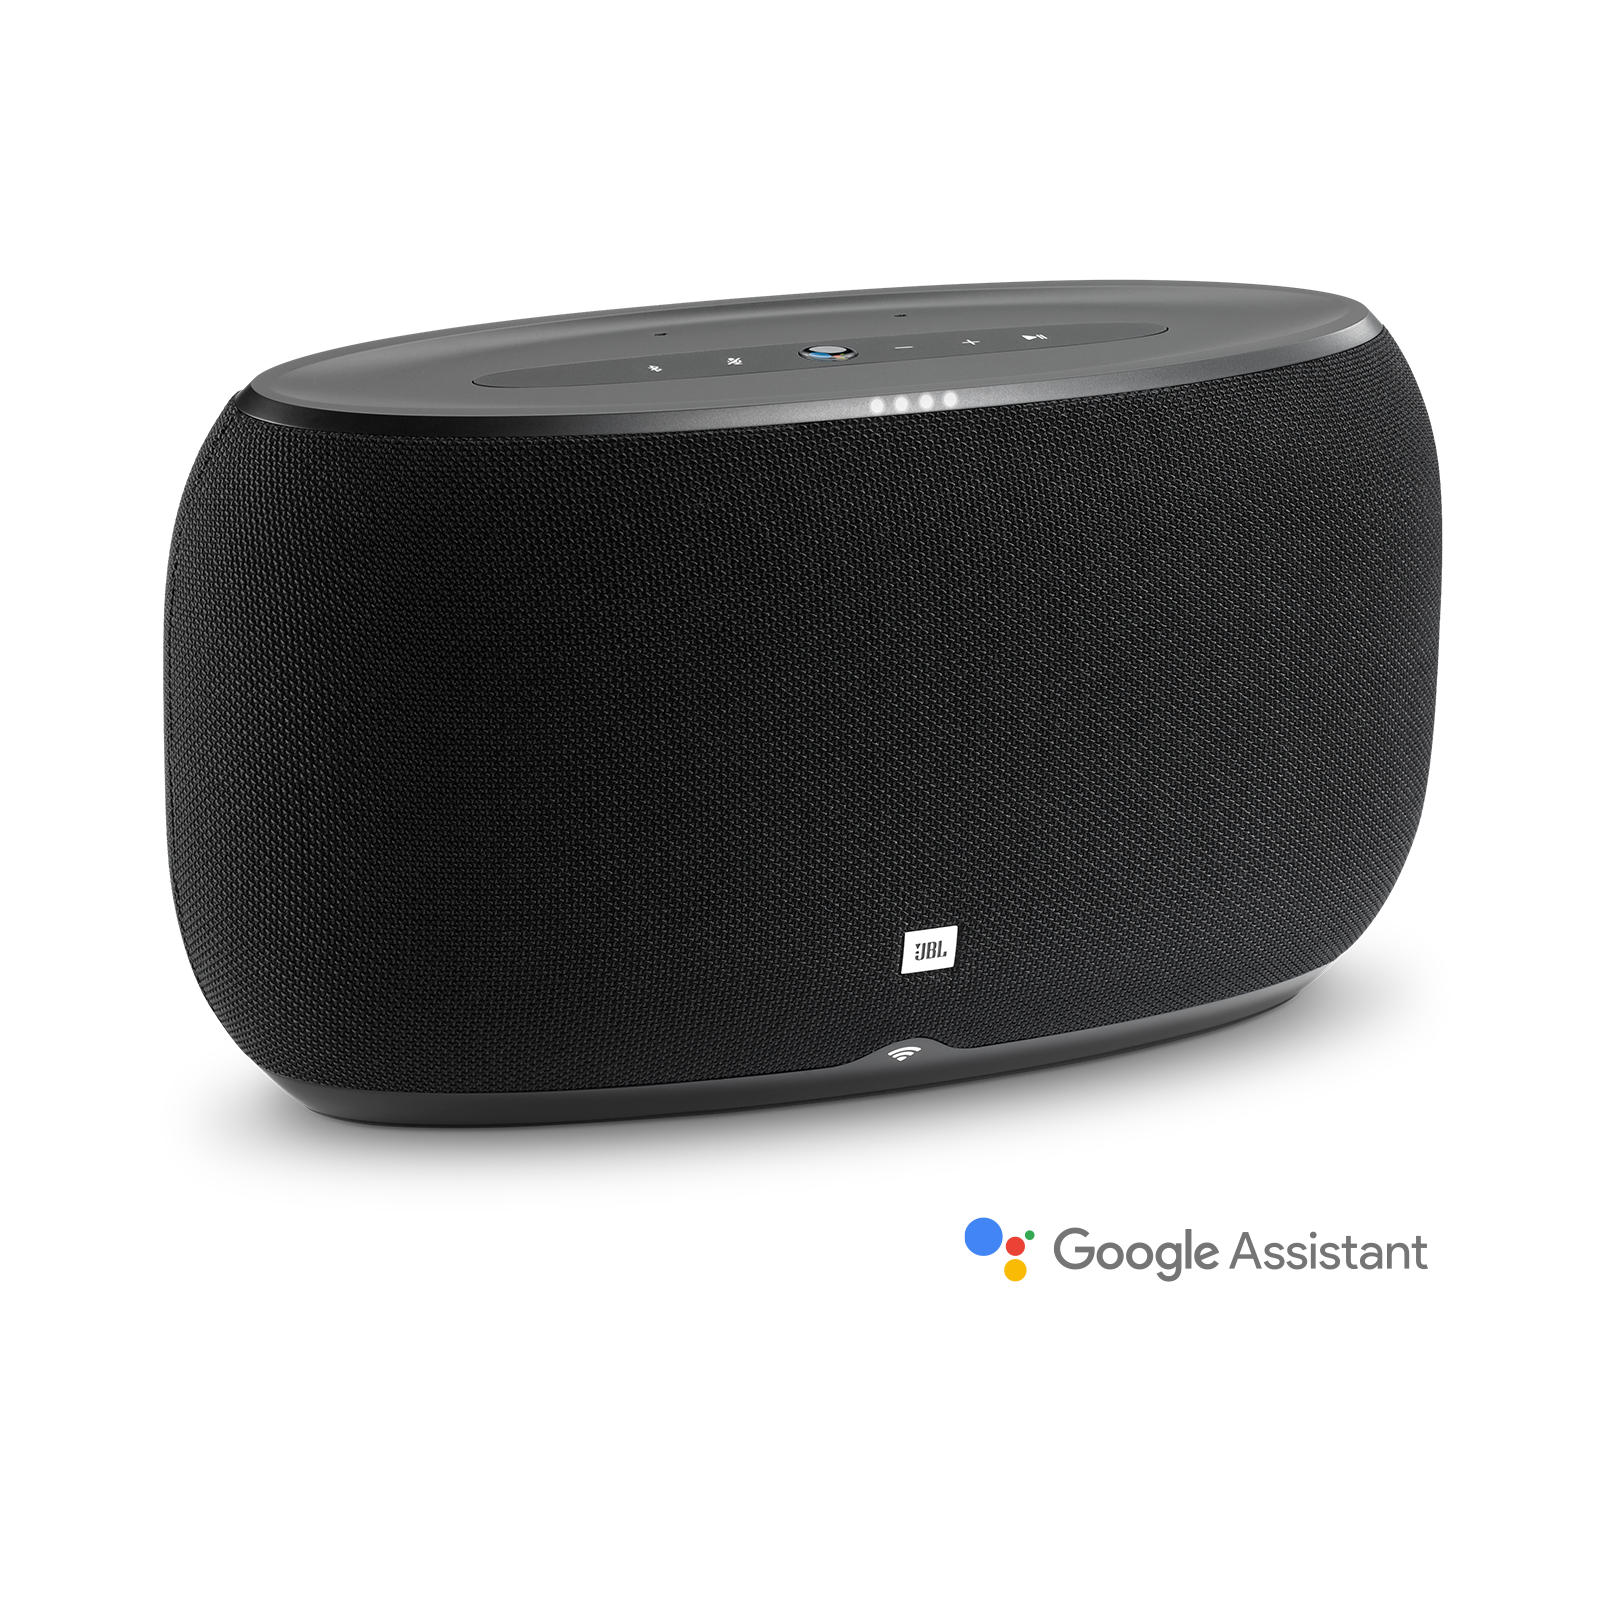 JBL Link 500 - Black - Voice-activated speaker - Hero